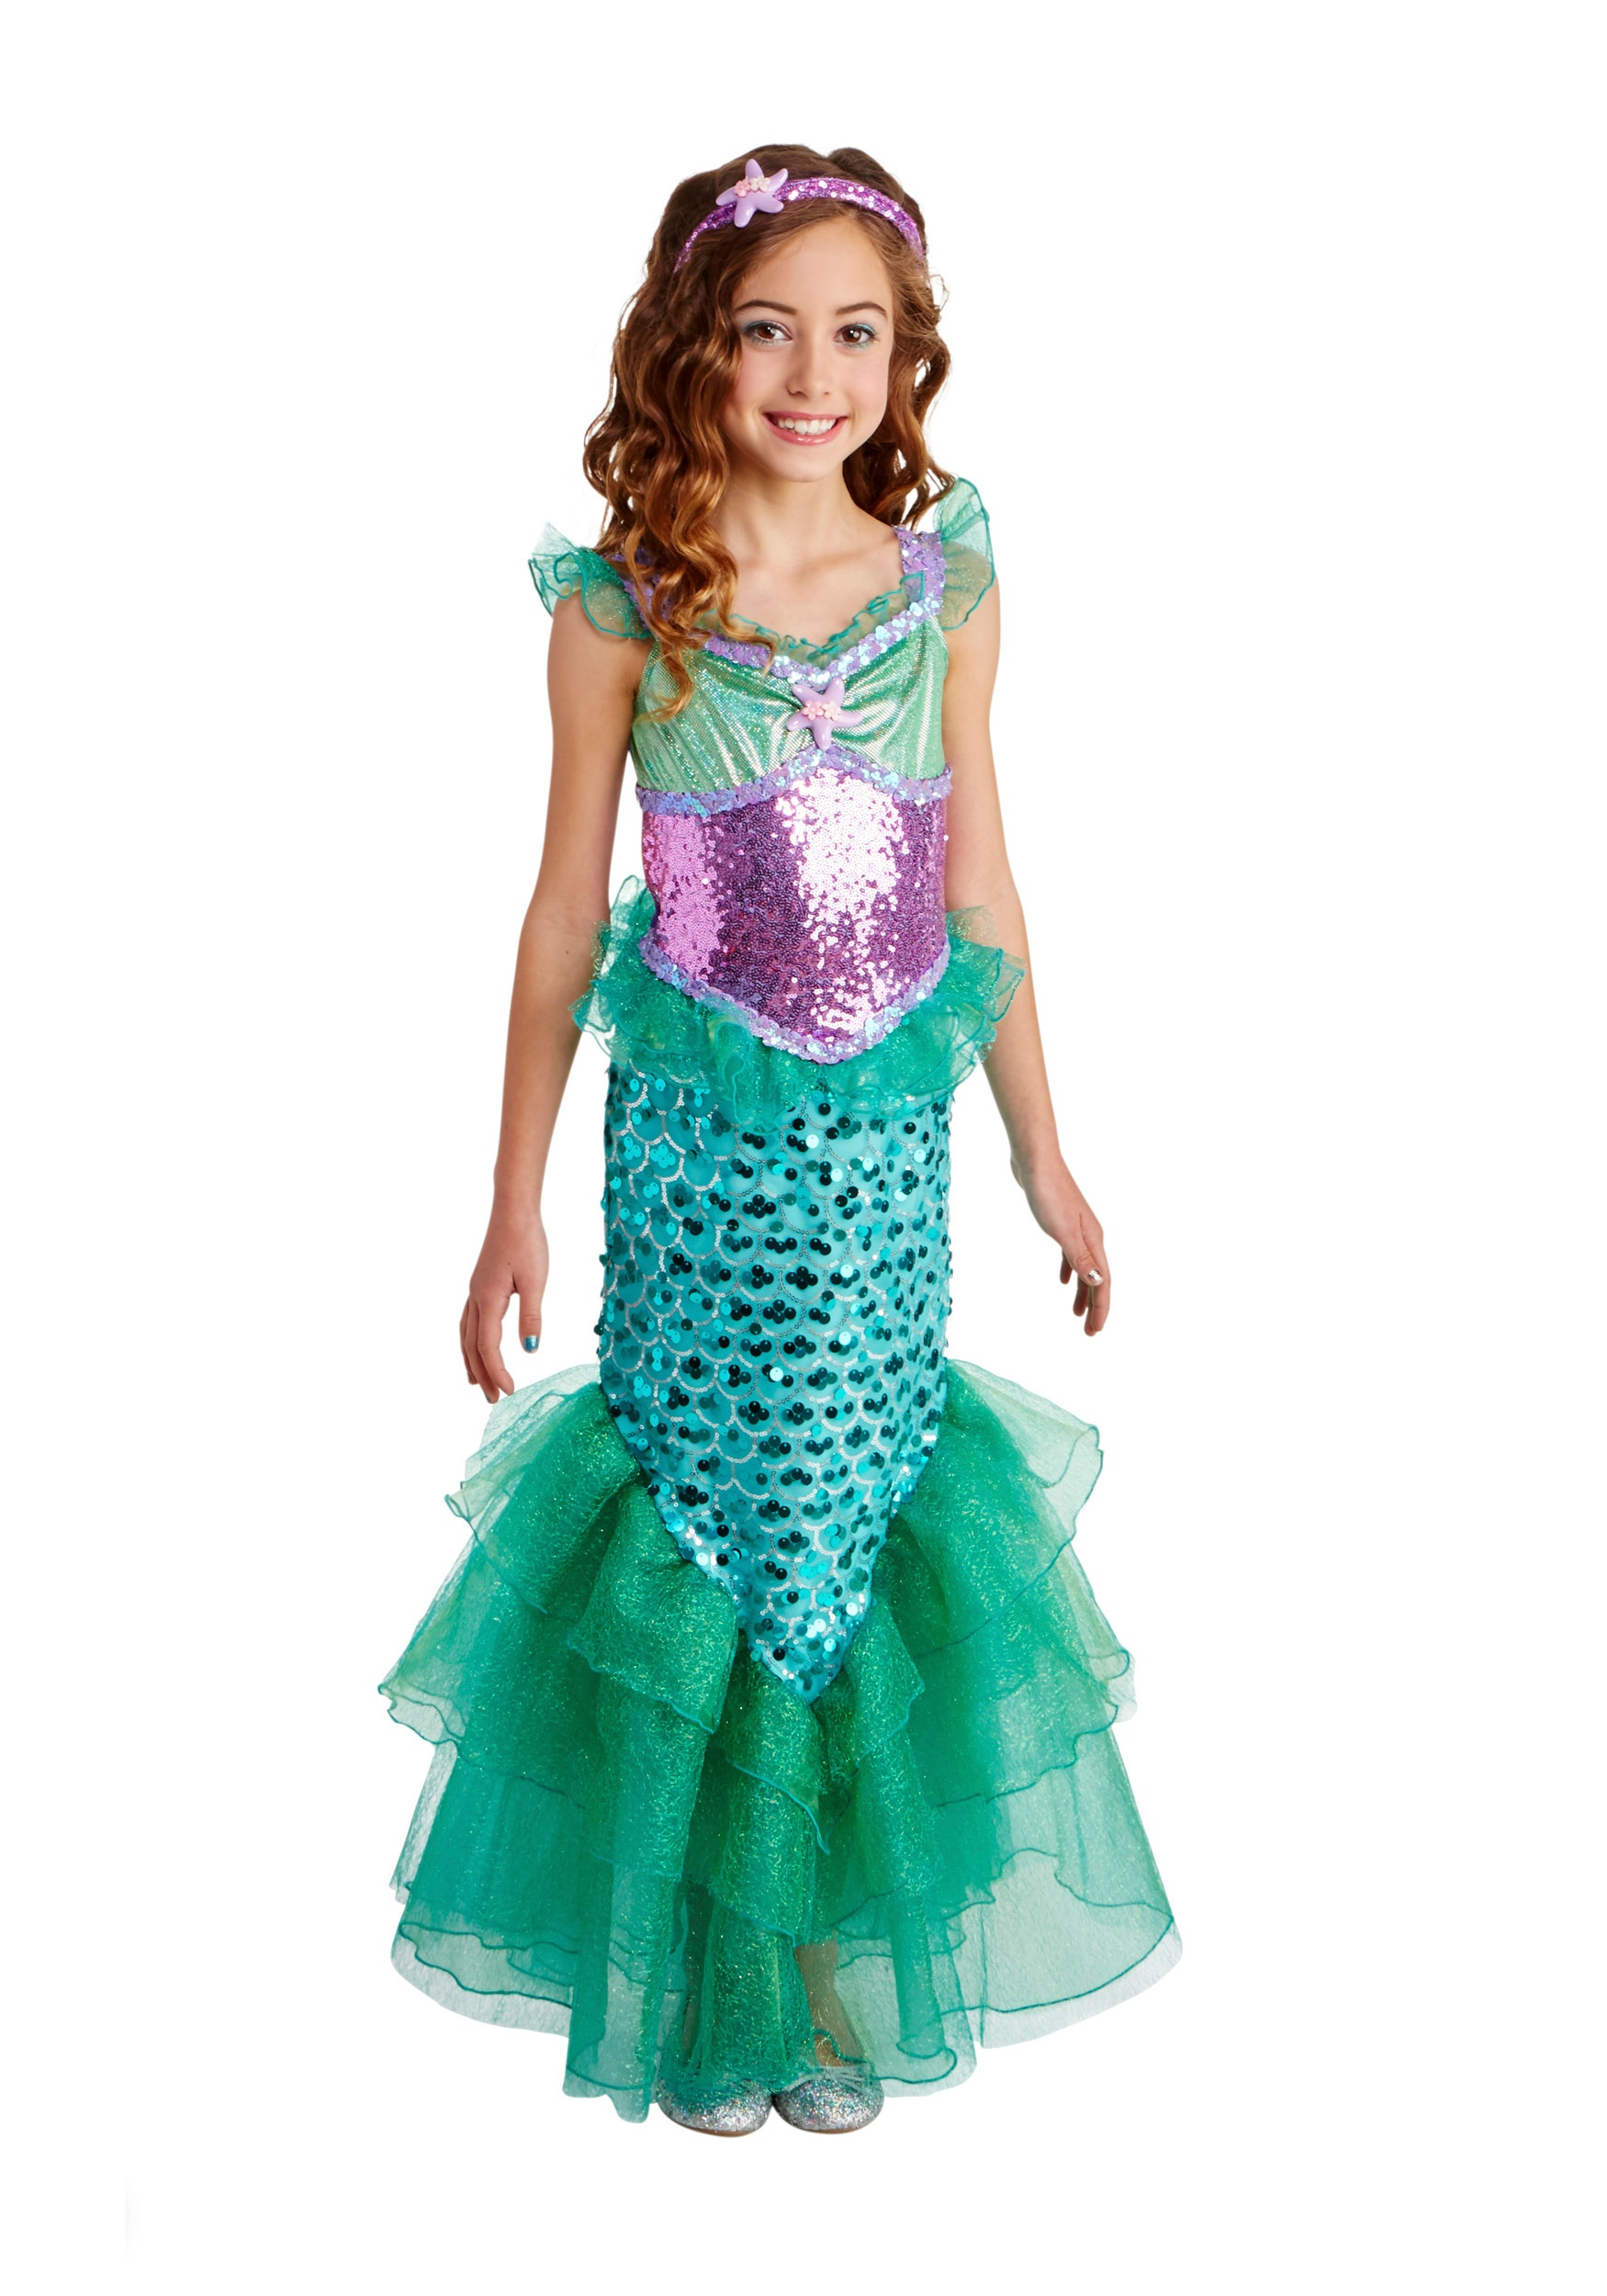 Blue Seas Mermaid Deluxe Costume for Kids